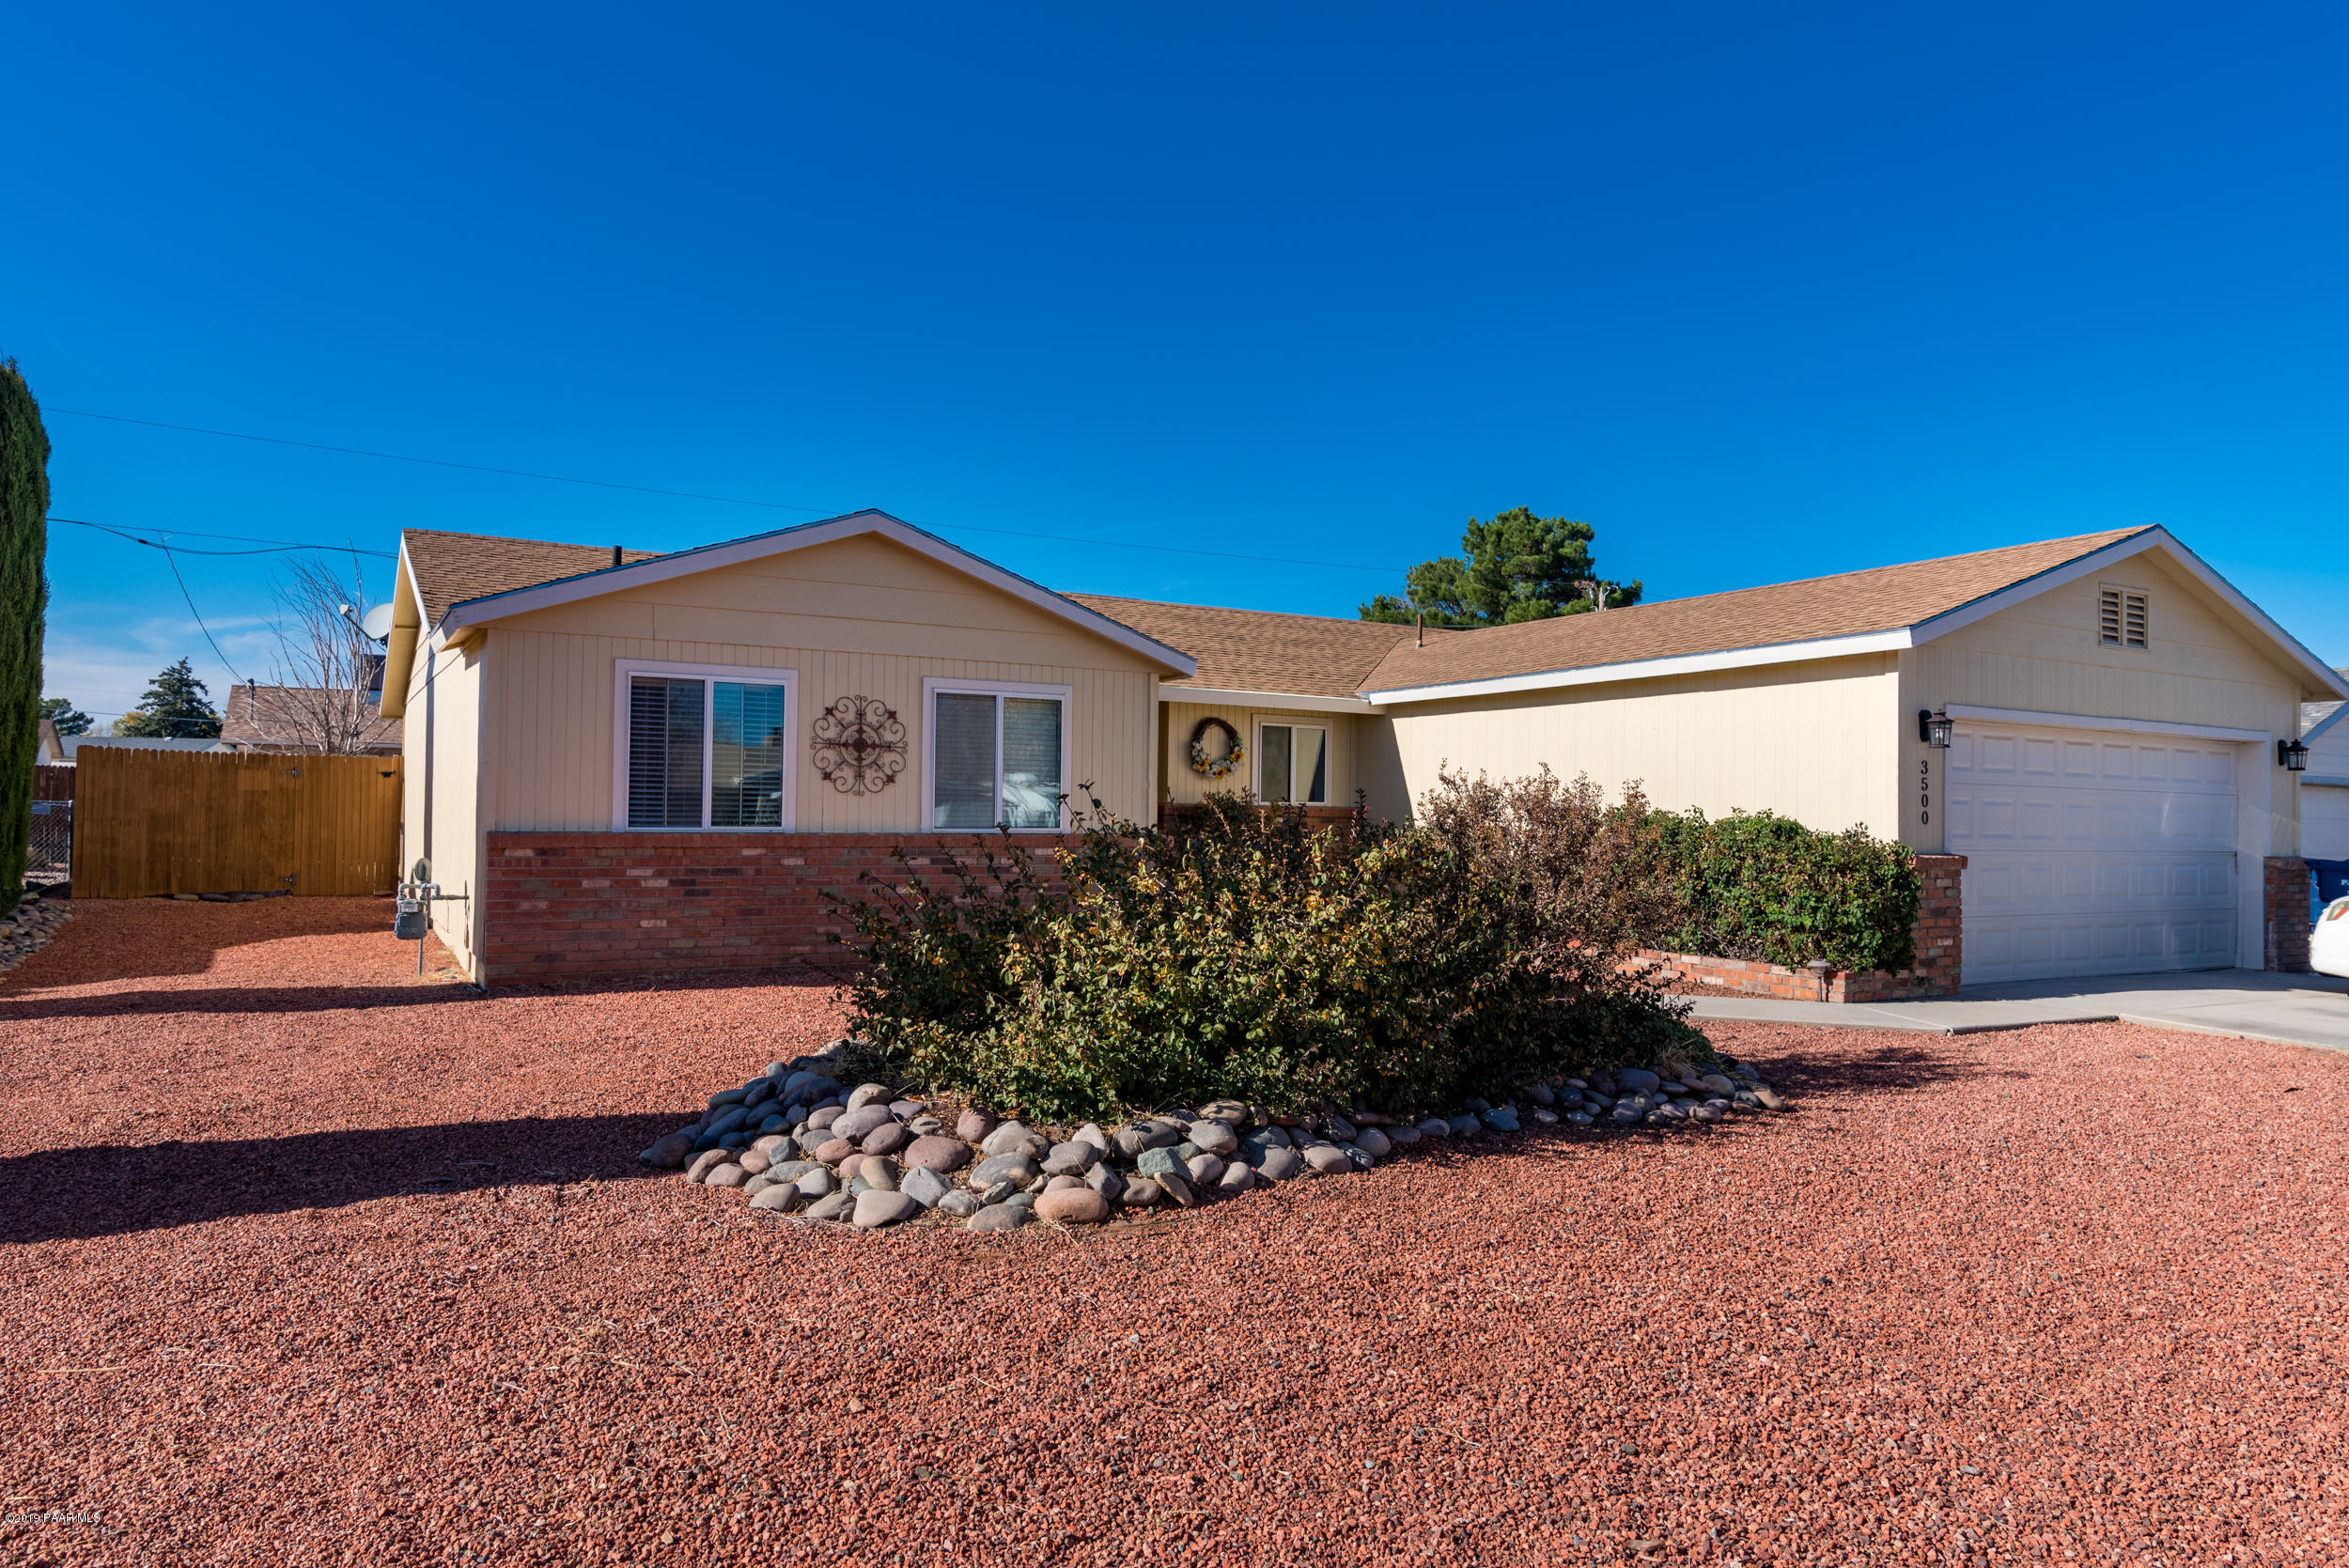 3500 N Dale Drive, Prescott Valley, Arizona